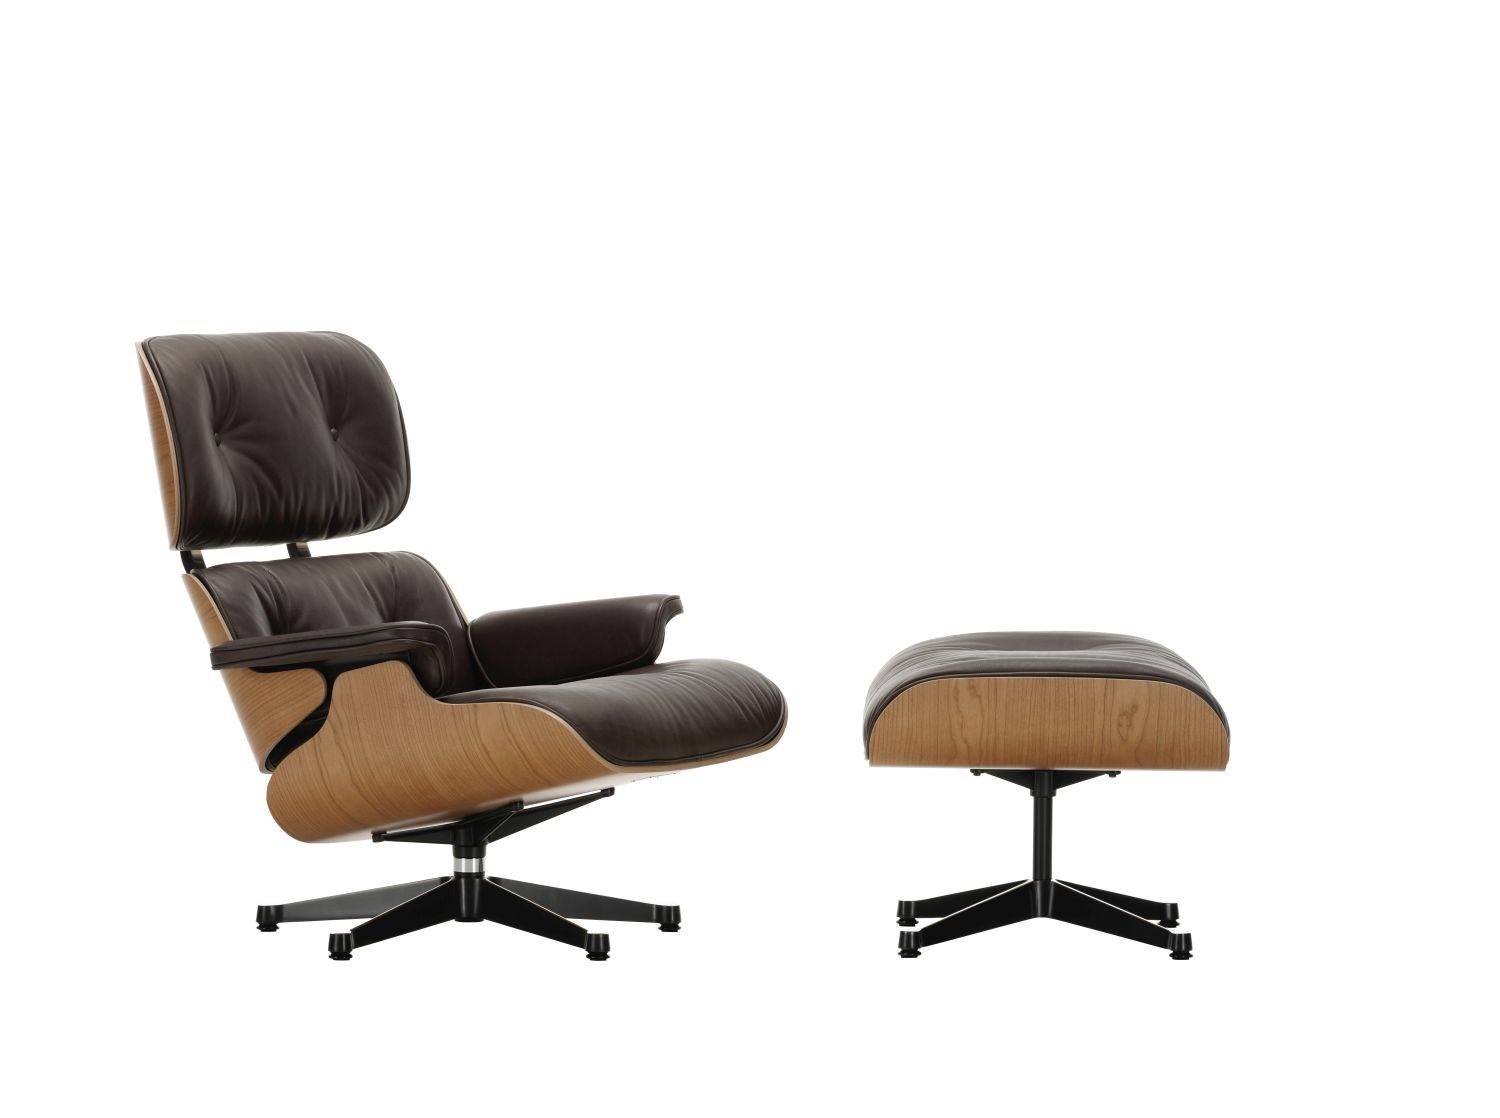 Vitra lounge chair ottoman xl amerikanischer for Eames chair nachbau